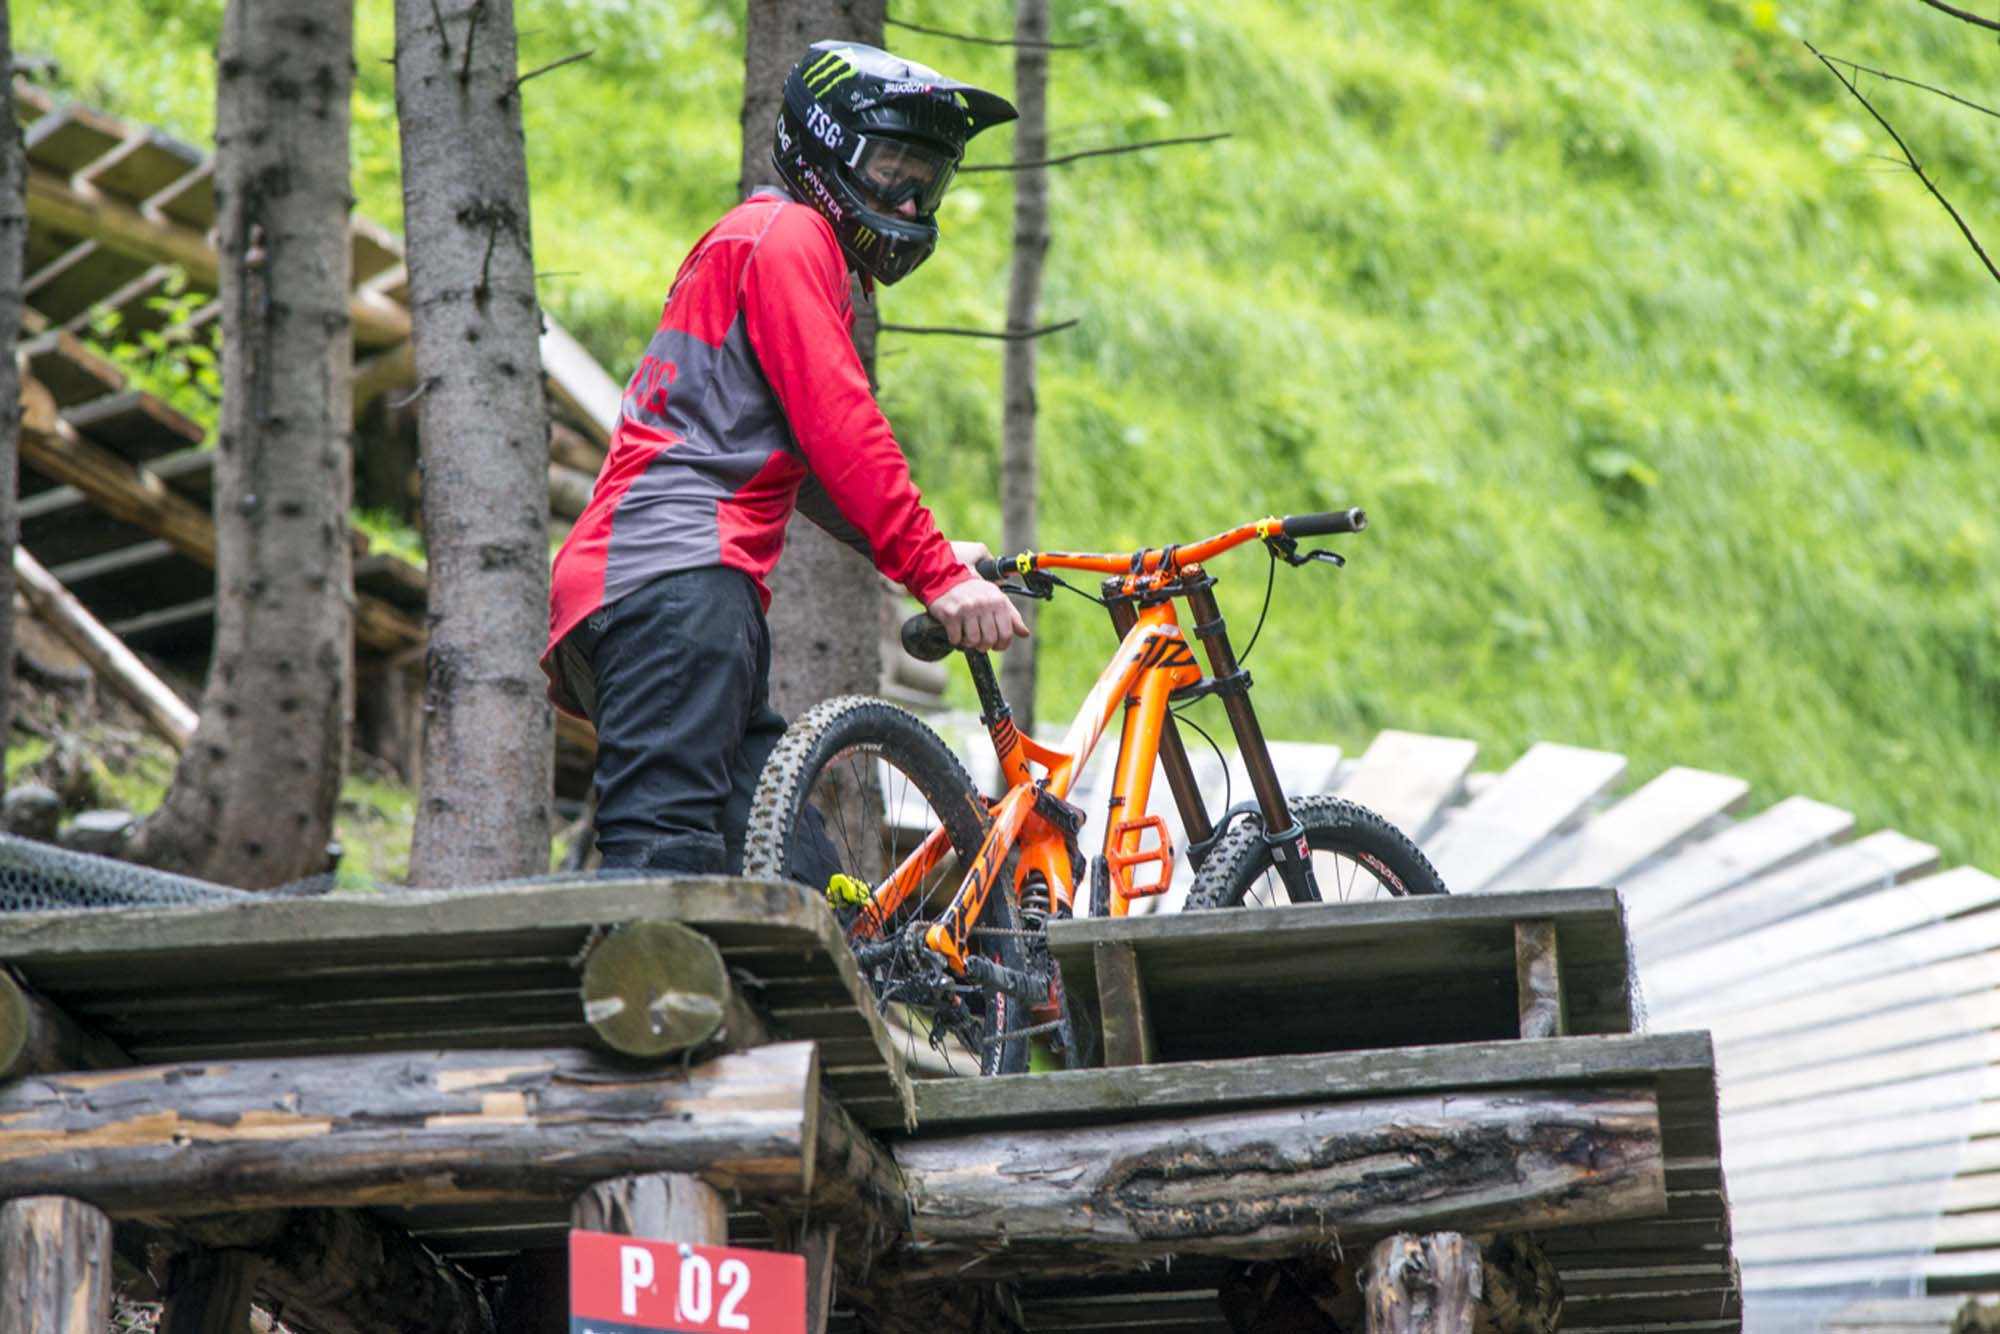 Sam Pilgrim Saalbach Hinterglemm Monster Energy Video